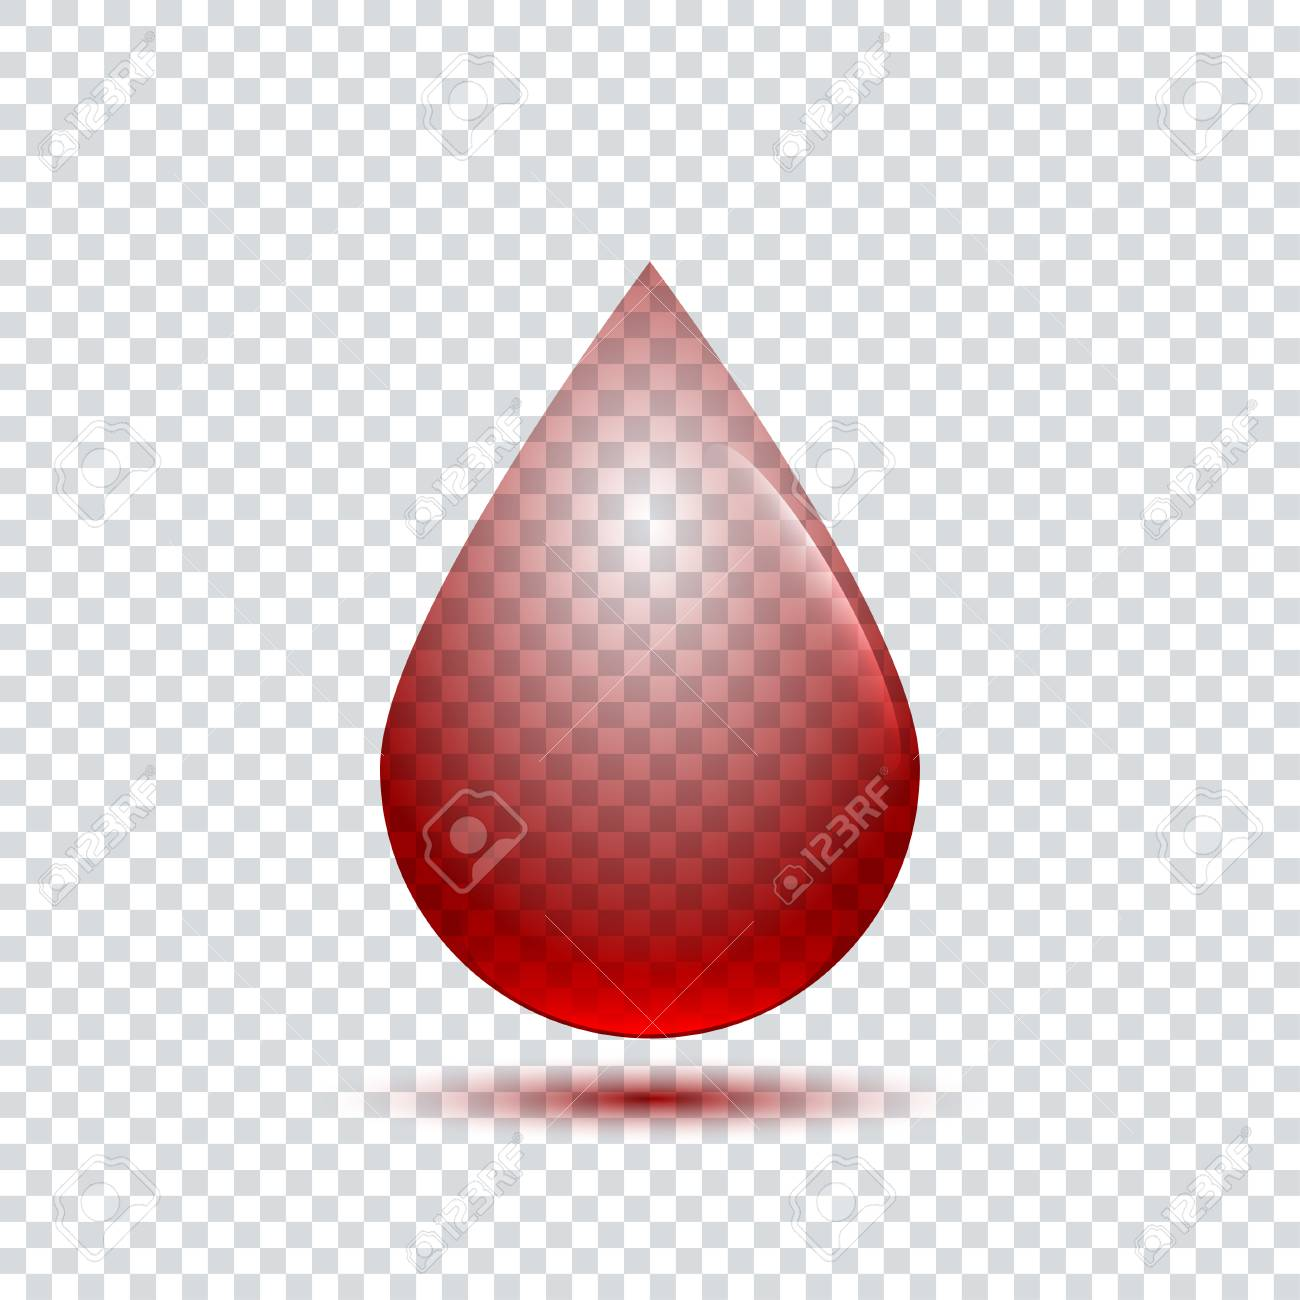 Blood Drop Transparent - Realistic Blood Drop With Shadow On Transparent Background Royalty ...